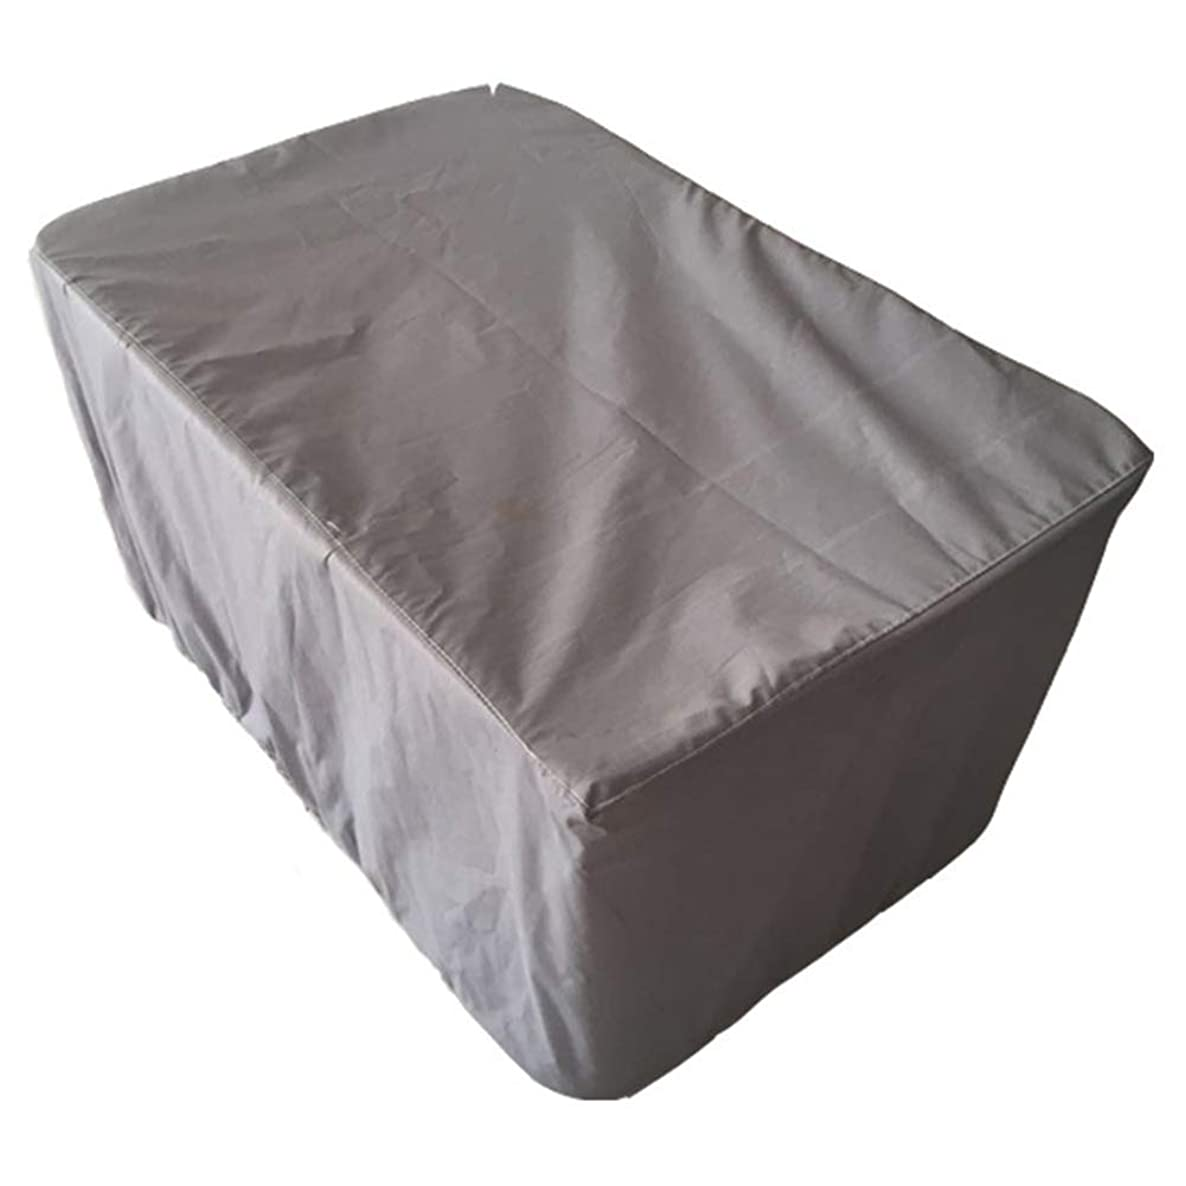 Kin Outdoor Tent Outdoor niture Waterproof Cover Forest Garden dust Cover Table and Chair Sun Protection Cover